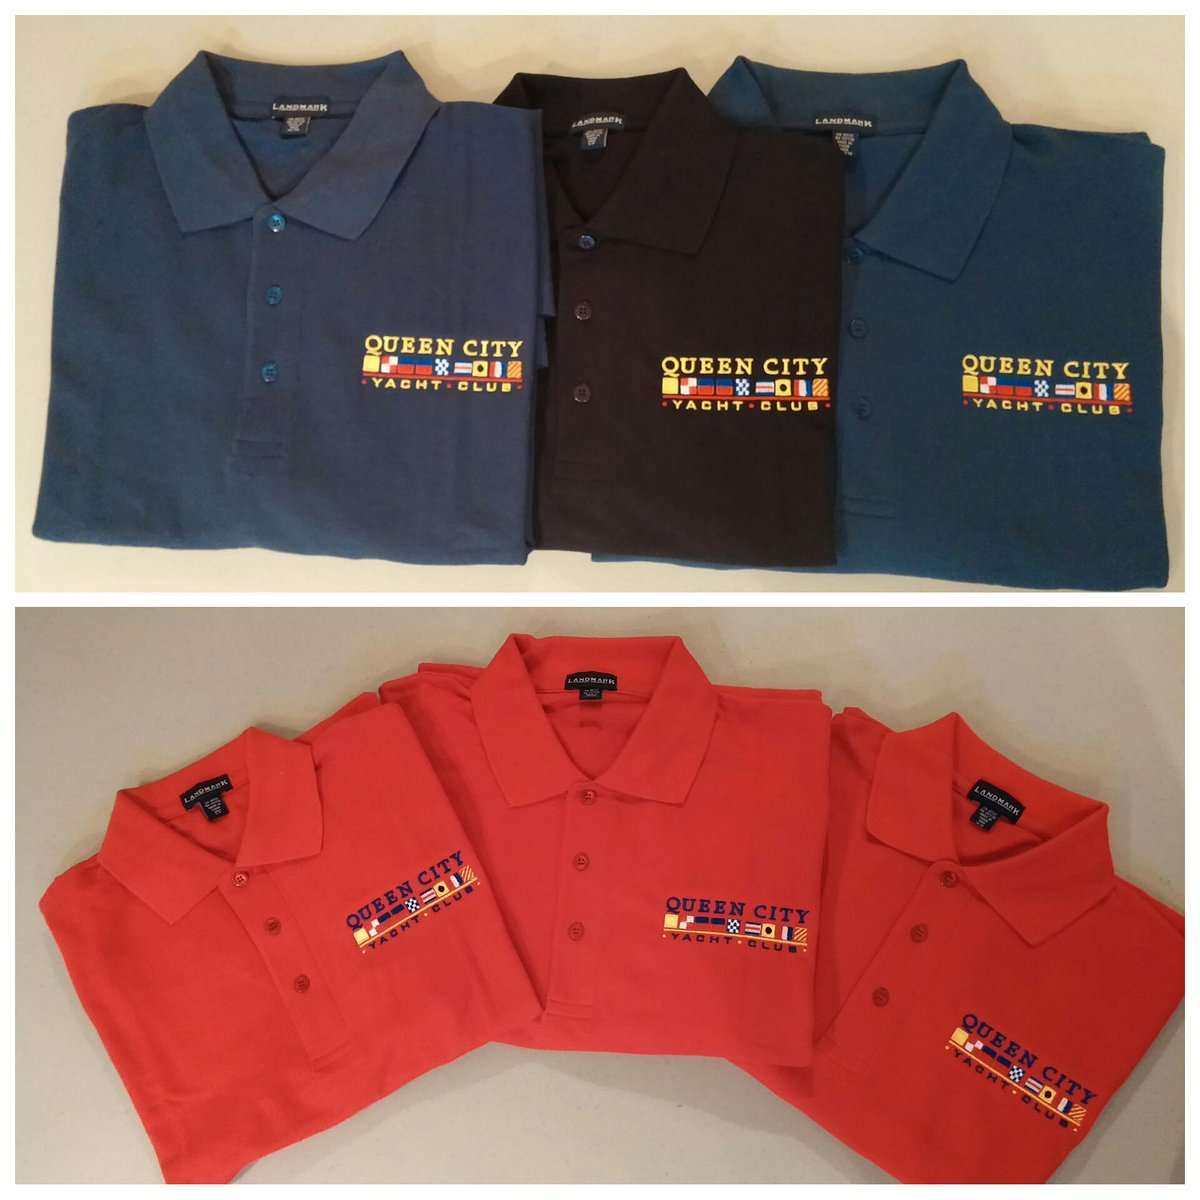 Bespoke Embroidered Polo Shirts